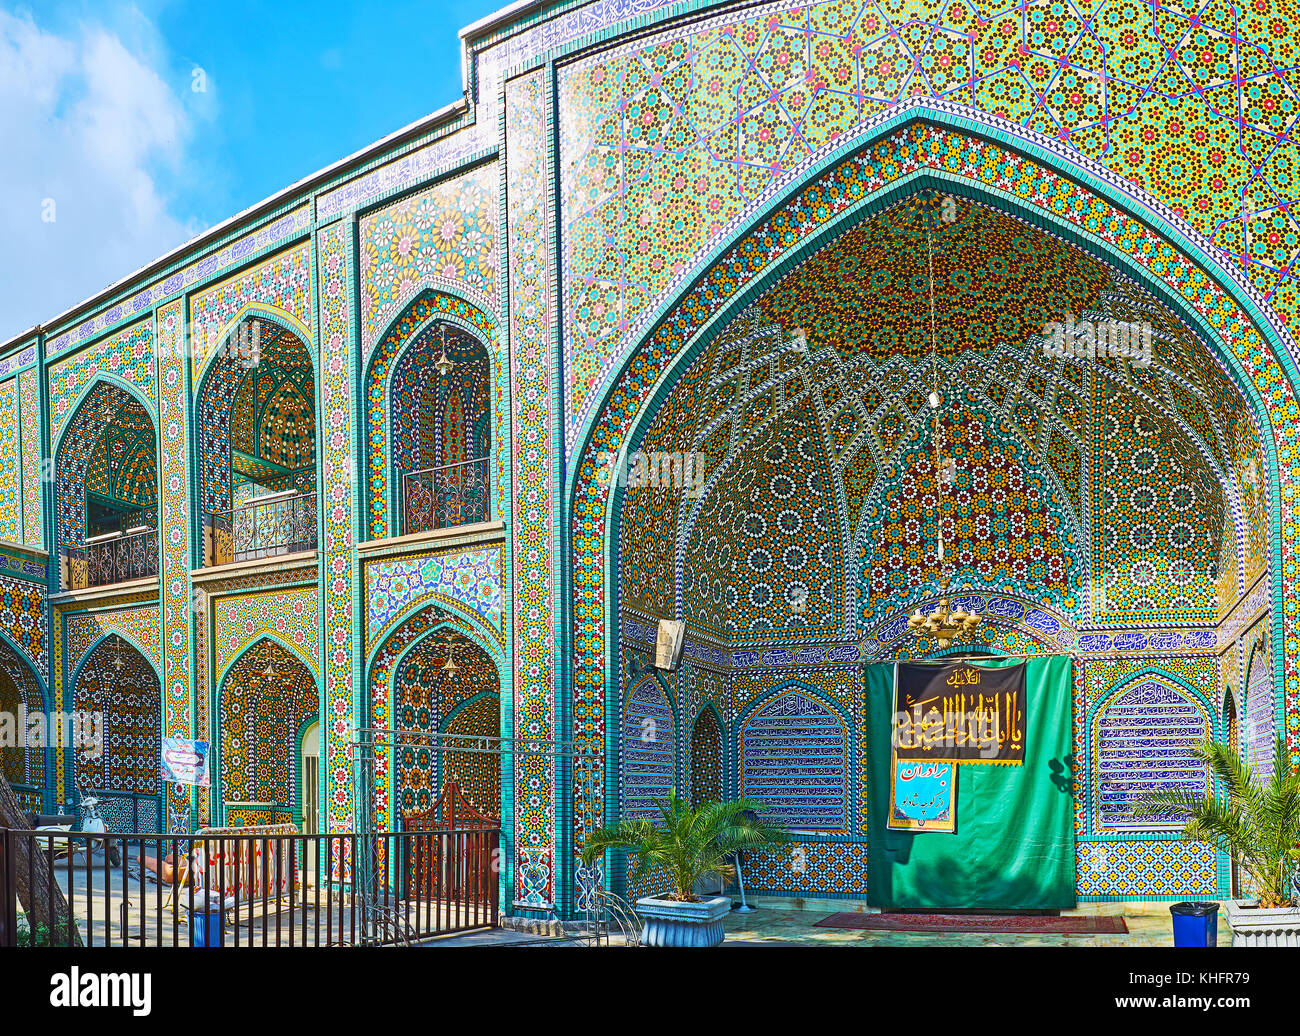 TEHRAN, IRAN - OCTOBER 11, 2017: The iwan (portal) of the Shrine of Syed Nasiruddin with complex Persian ornaments, - Stock Image